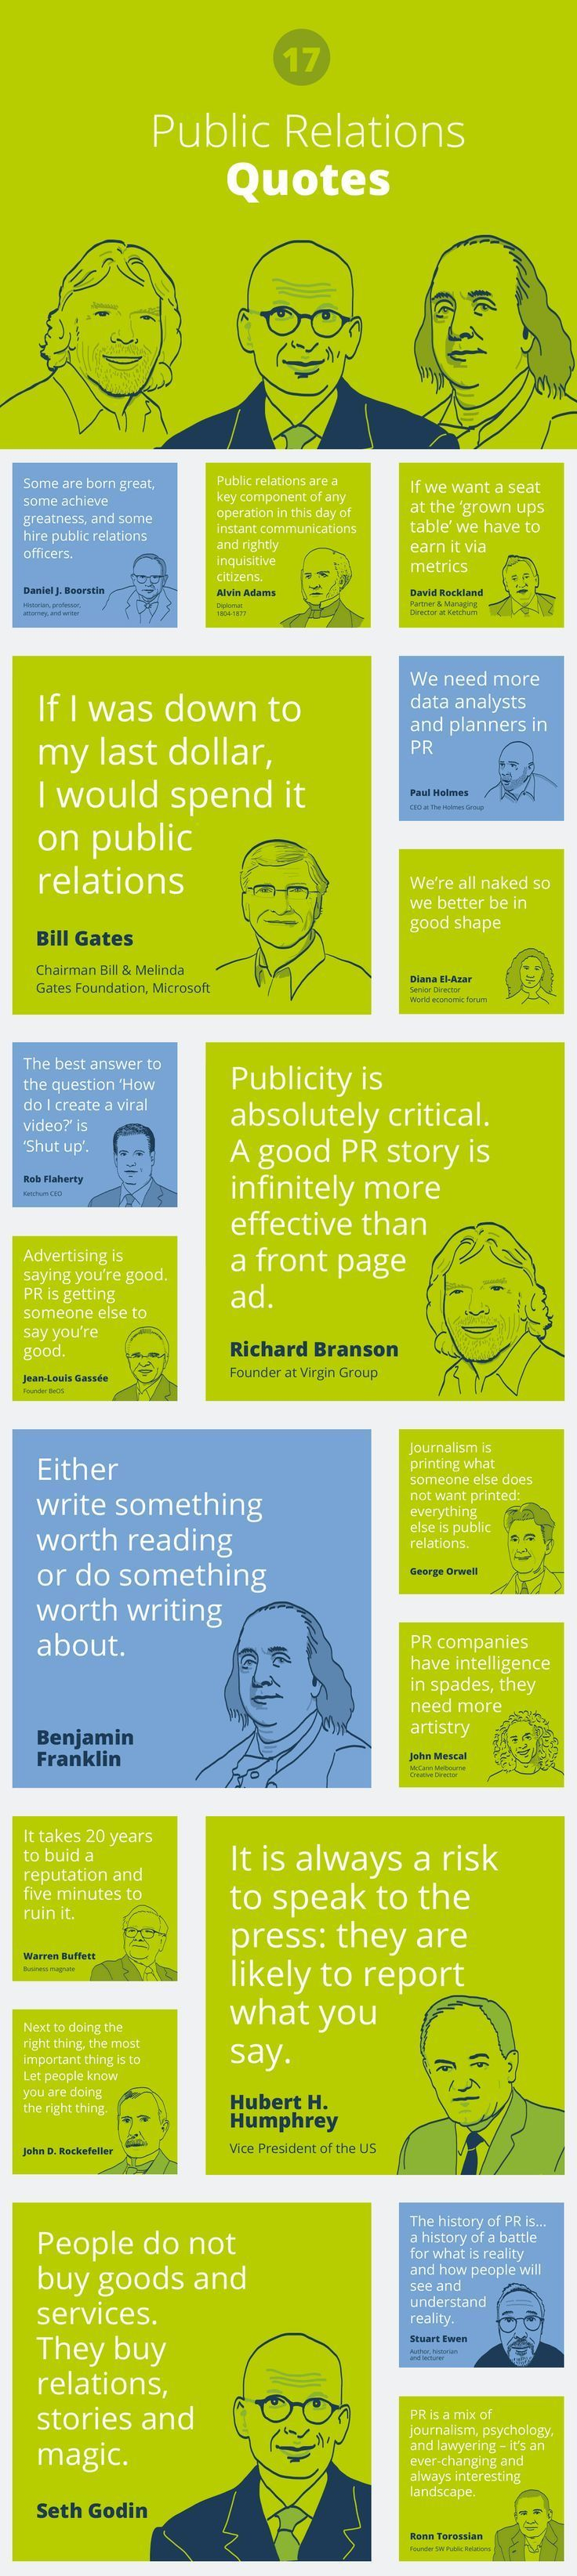 17 famous Public relations quotes by http://www.prezly.com #pr #publicrelations